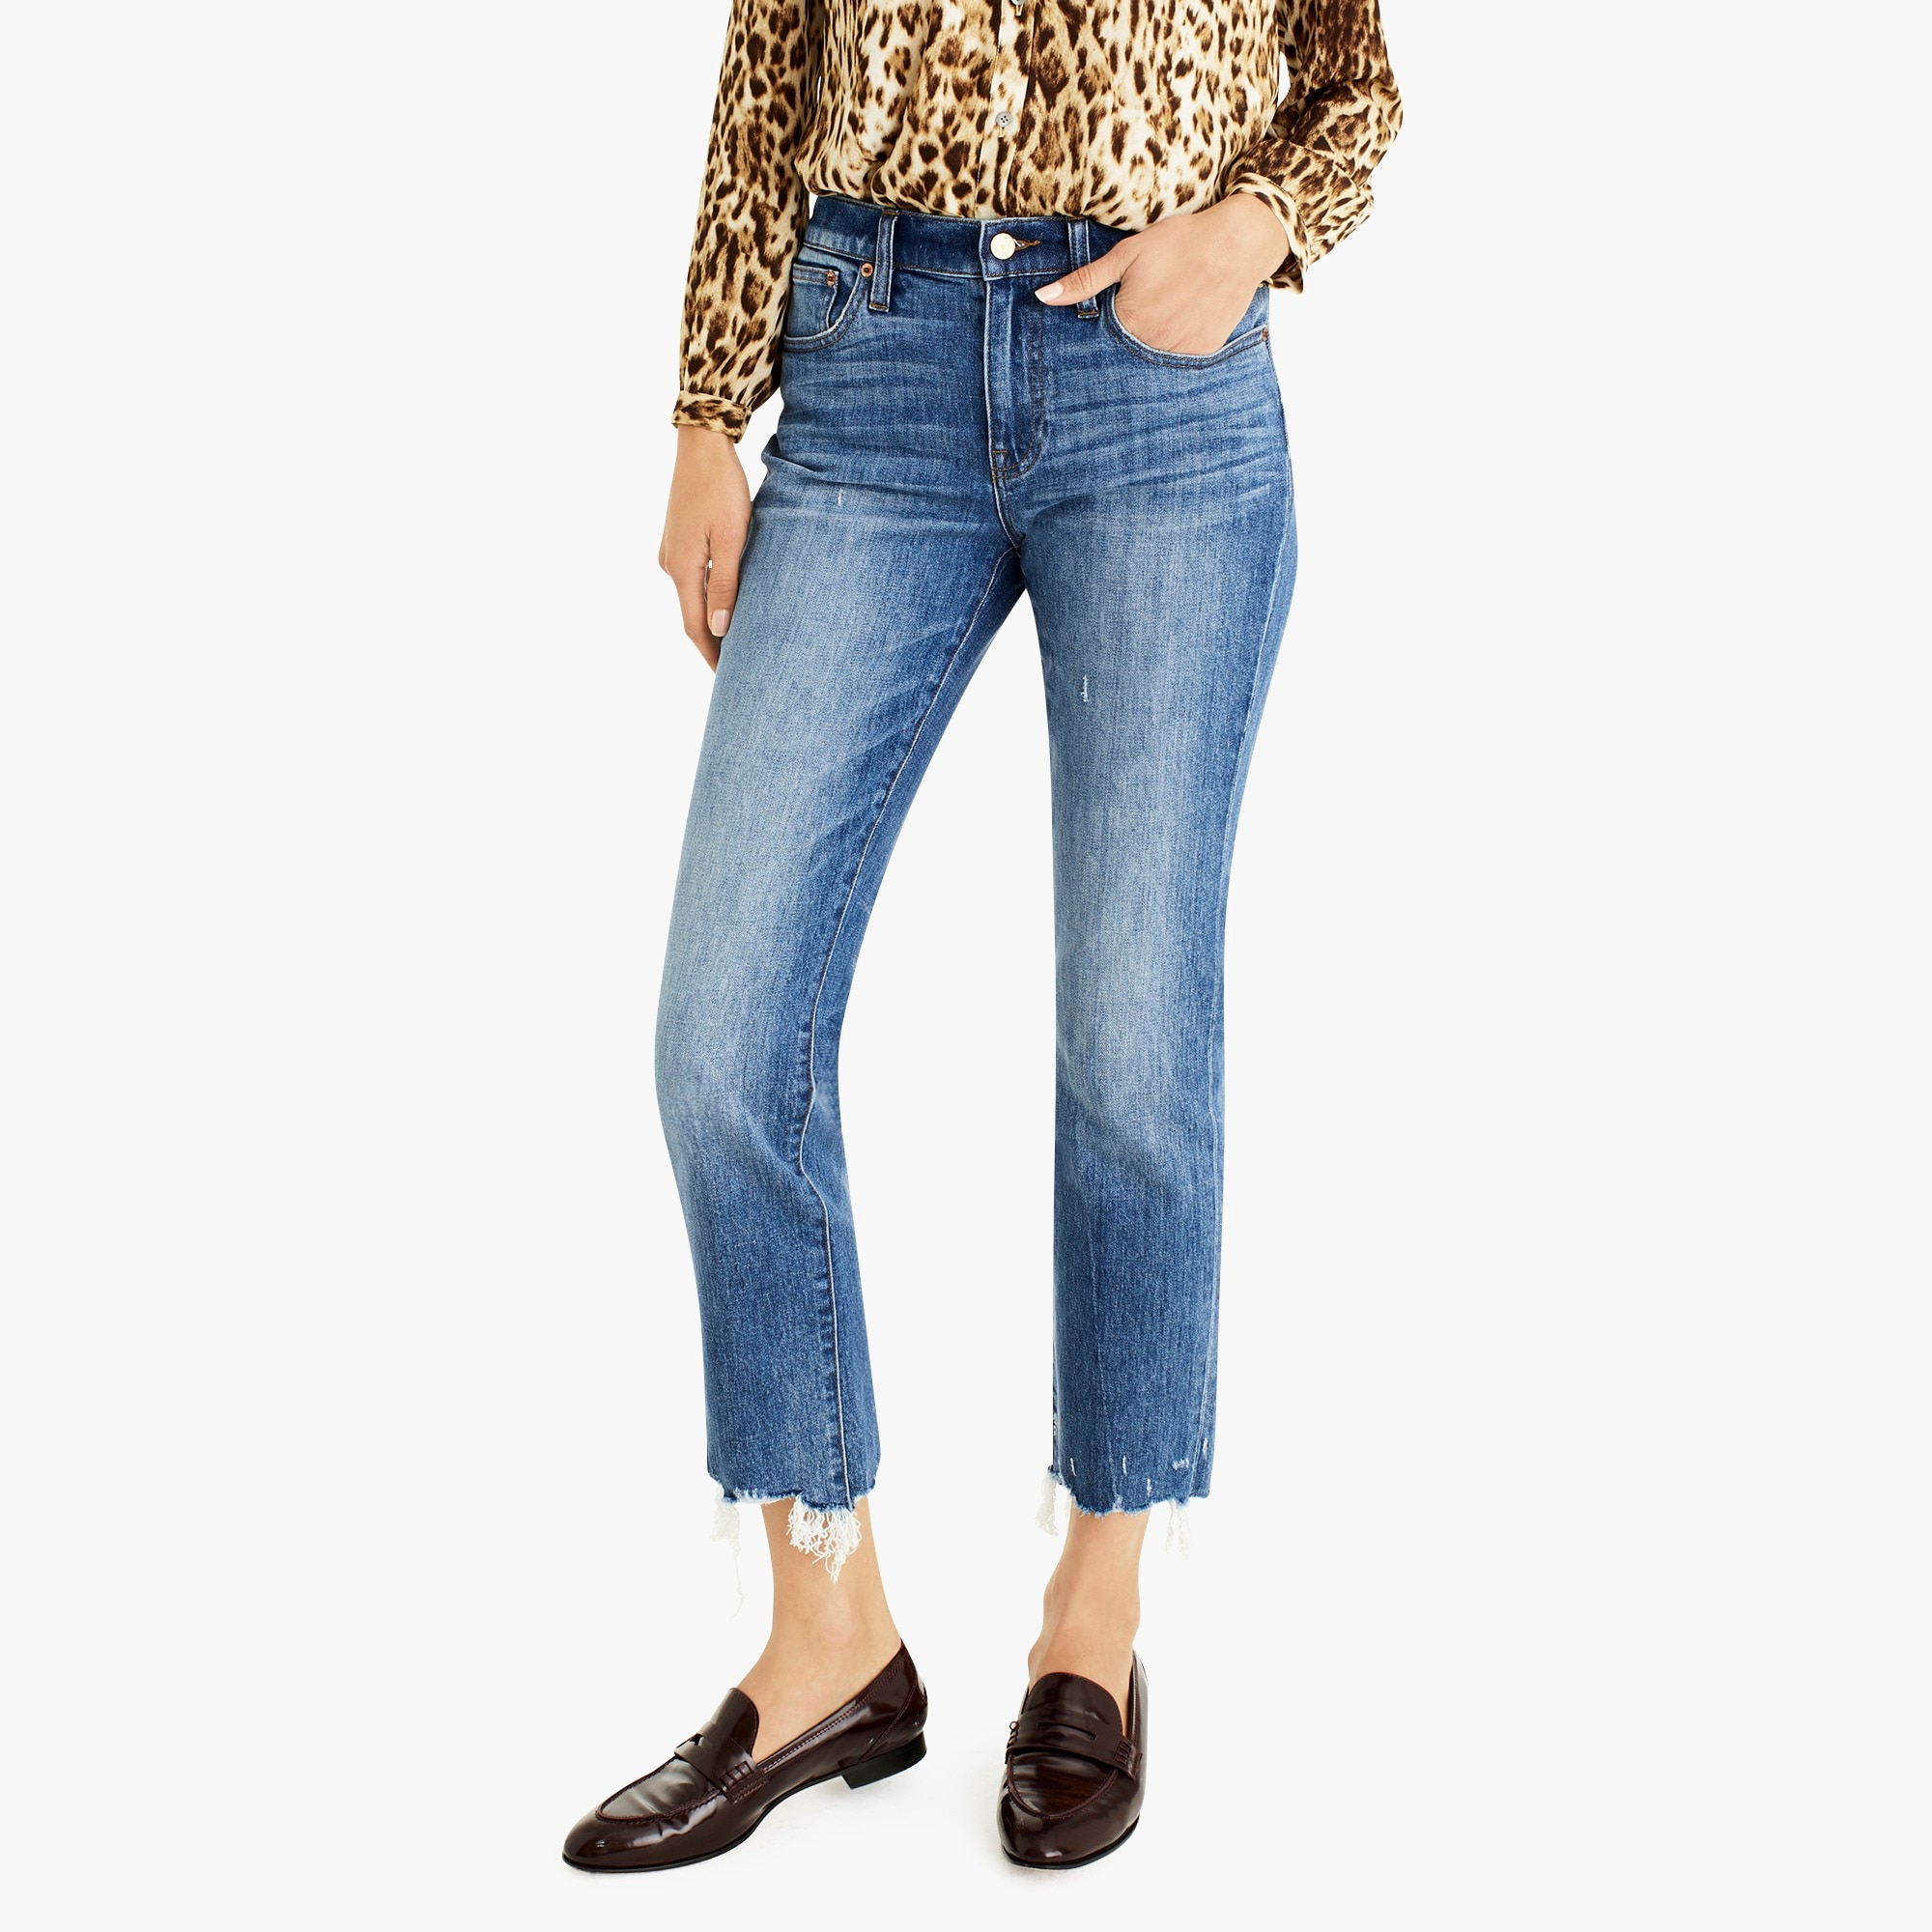 womens Slim boyfriend jean with chewed hems